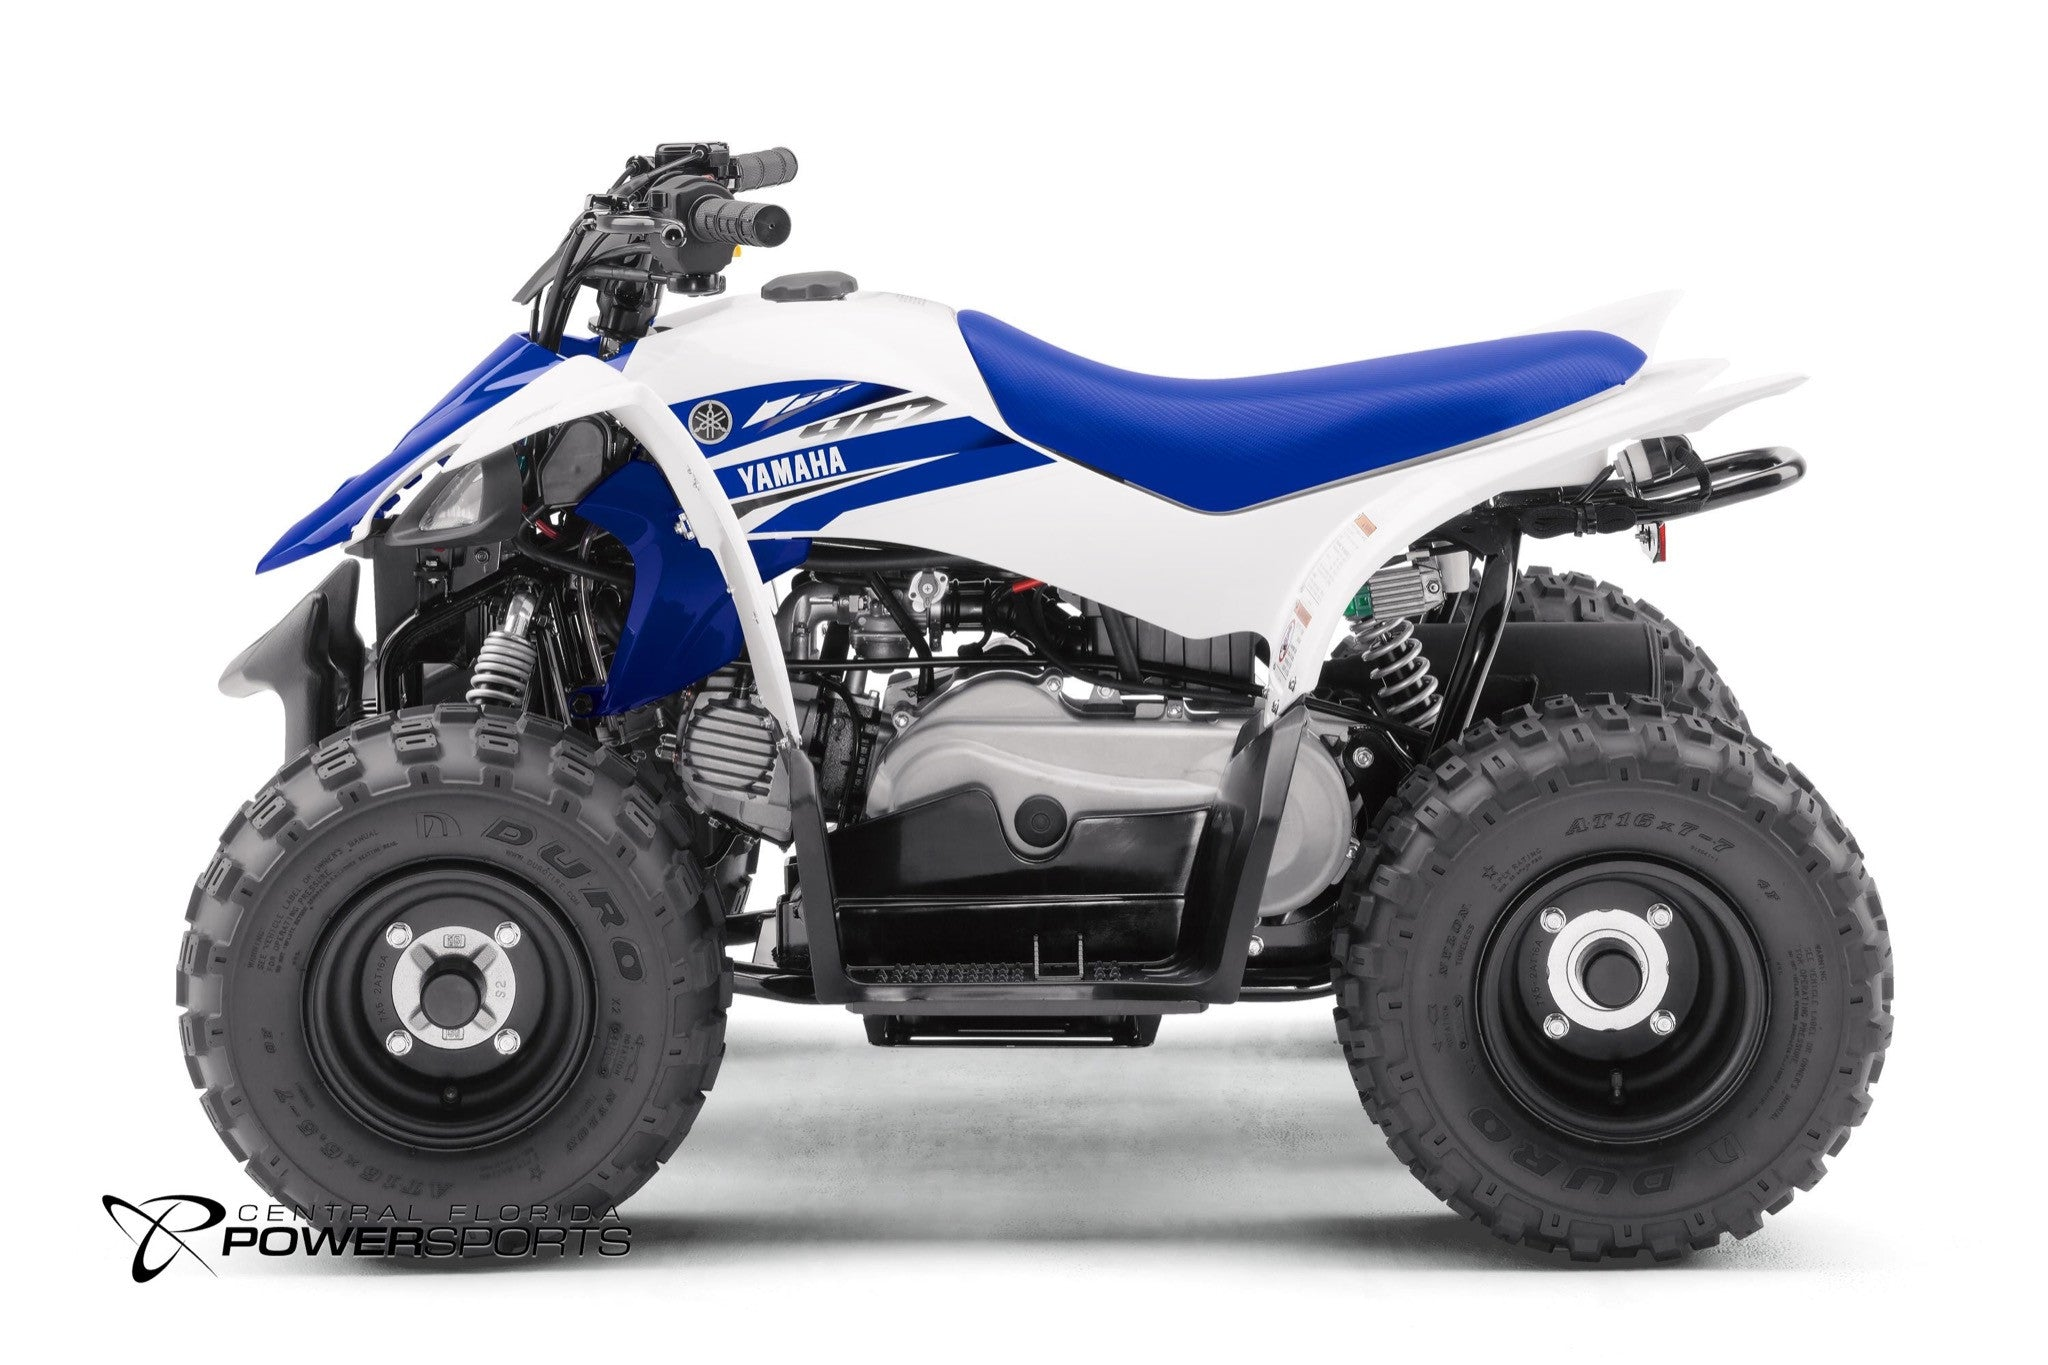 2017 yamaha yfz50 sport atv for sale race ready. Black Bedroom Furniture Sets. Home Design Ideas